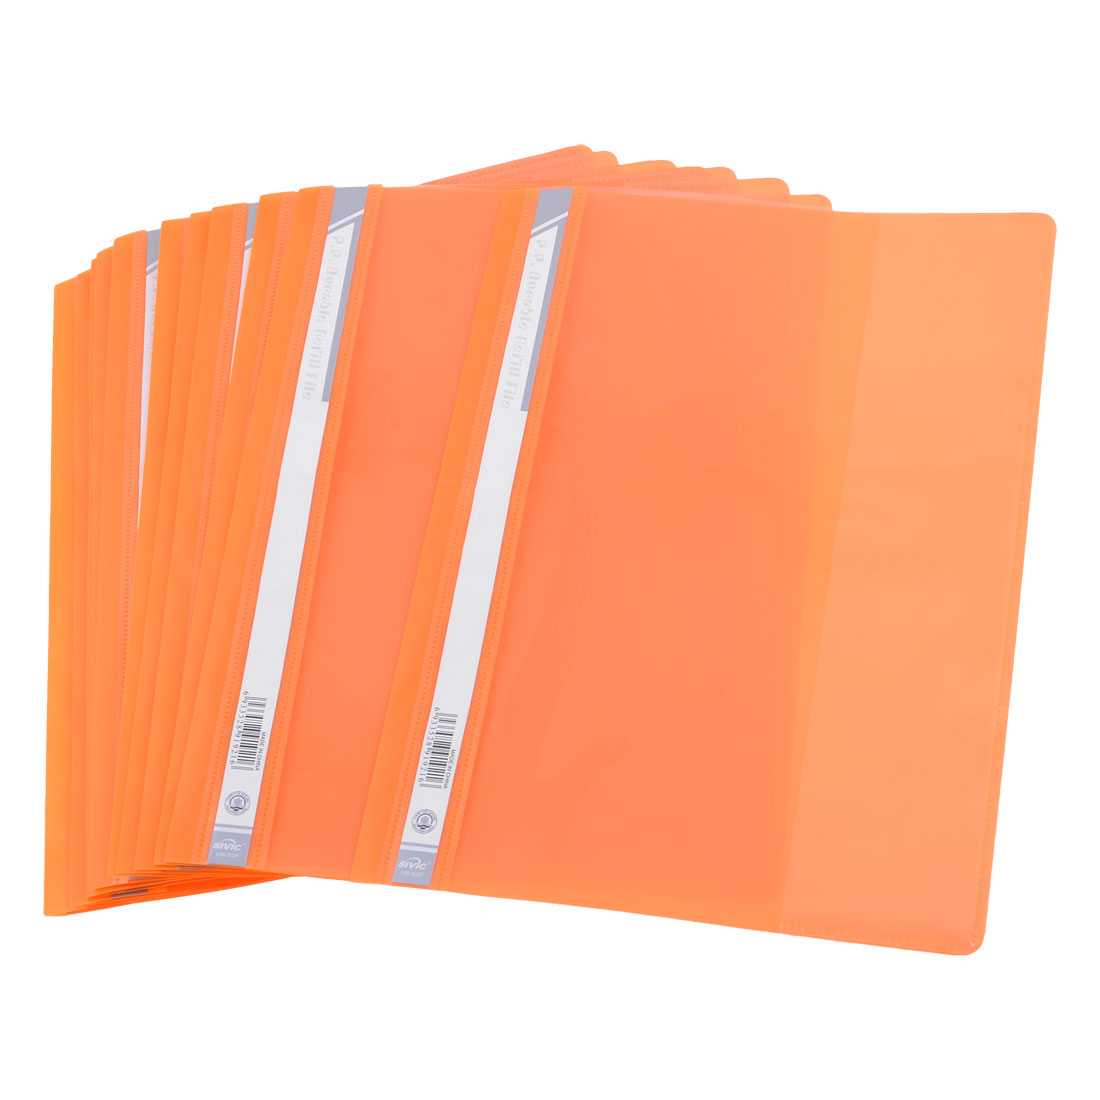 12 Pcs Size A4 Paper File Document Case Conference Folder Orange Clear